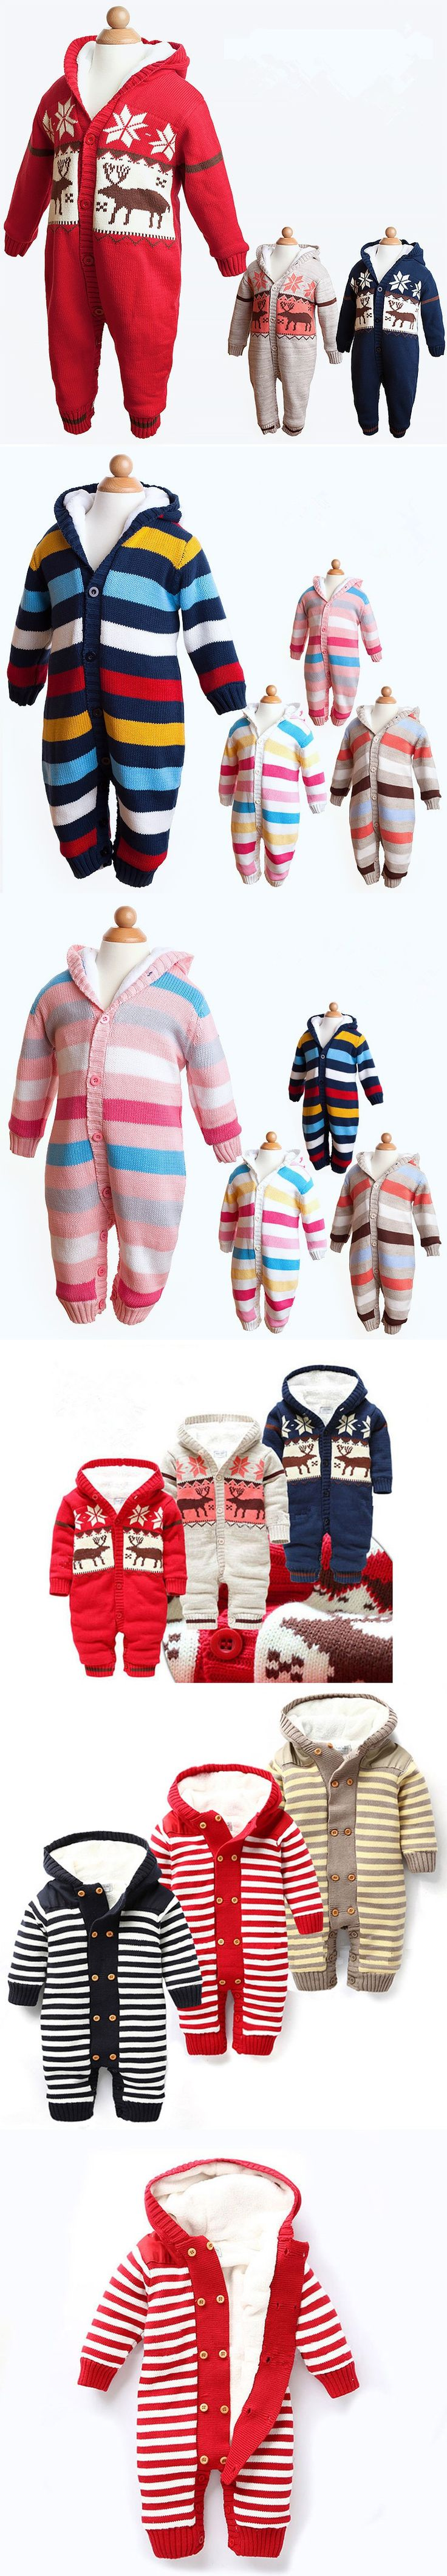 Newborn Baby One-piece Winter Romper Christmas Costumes for Boys Baby Clothes Baby Boy Romper Winter Outfits Costume Baby Romper $40